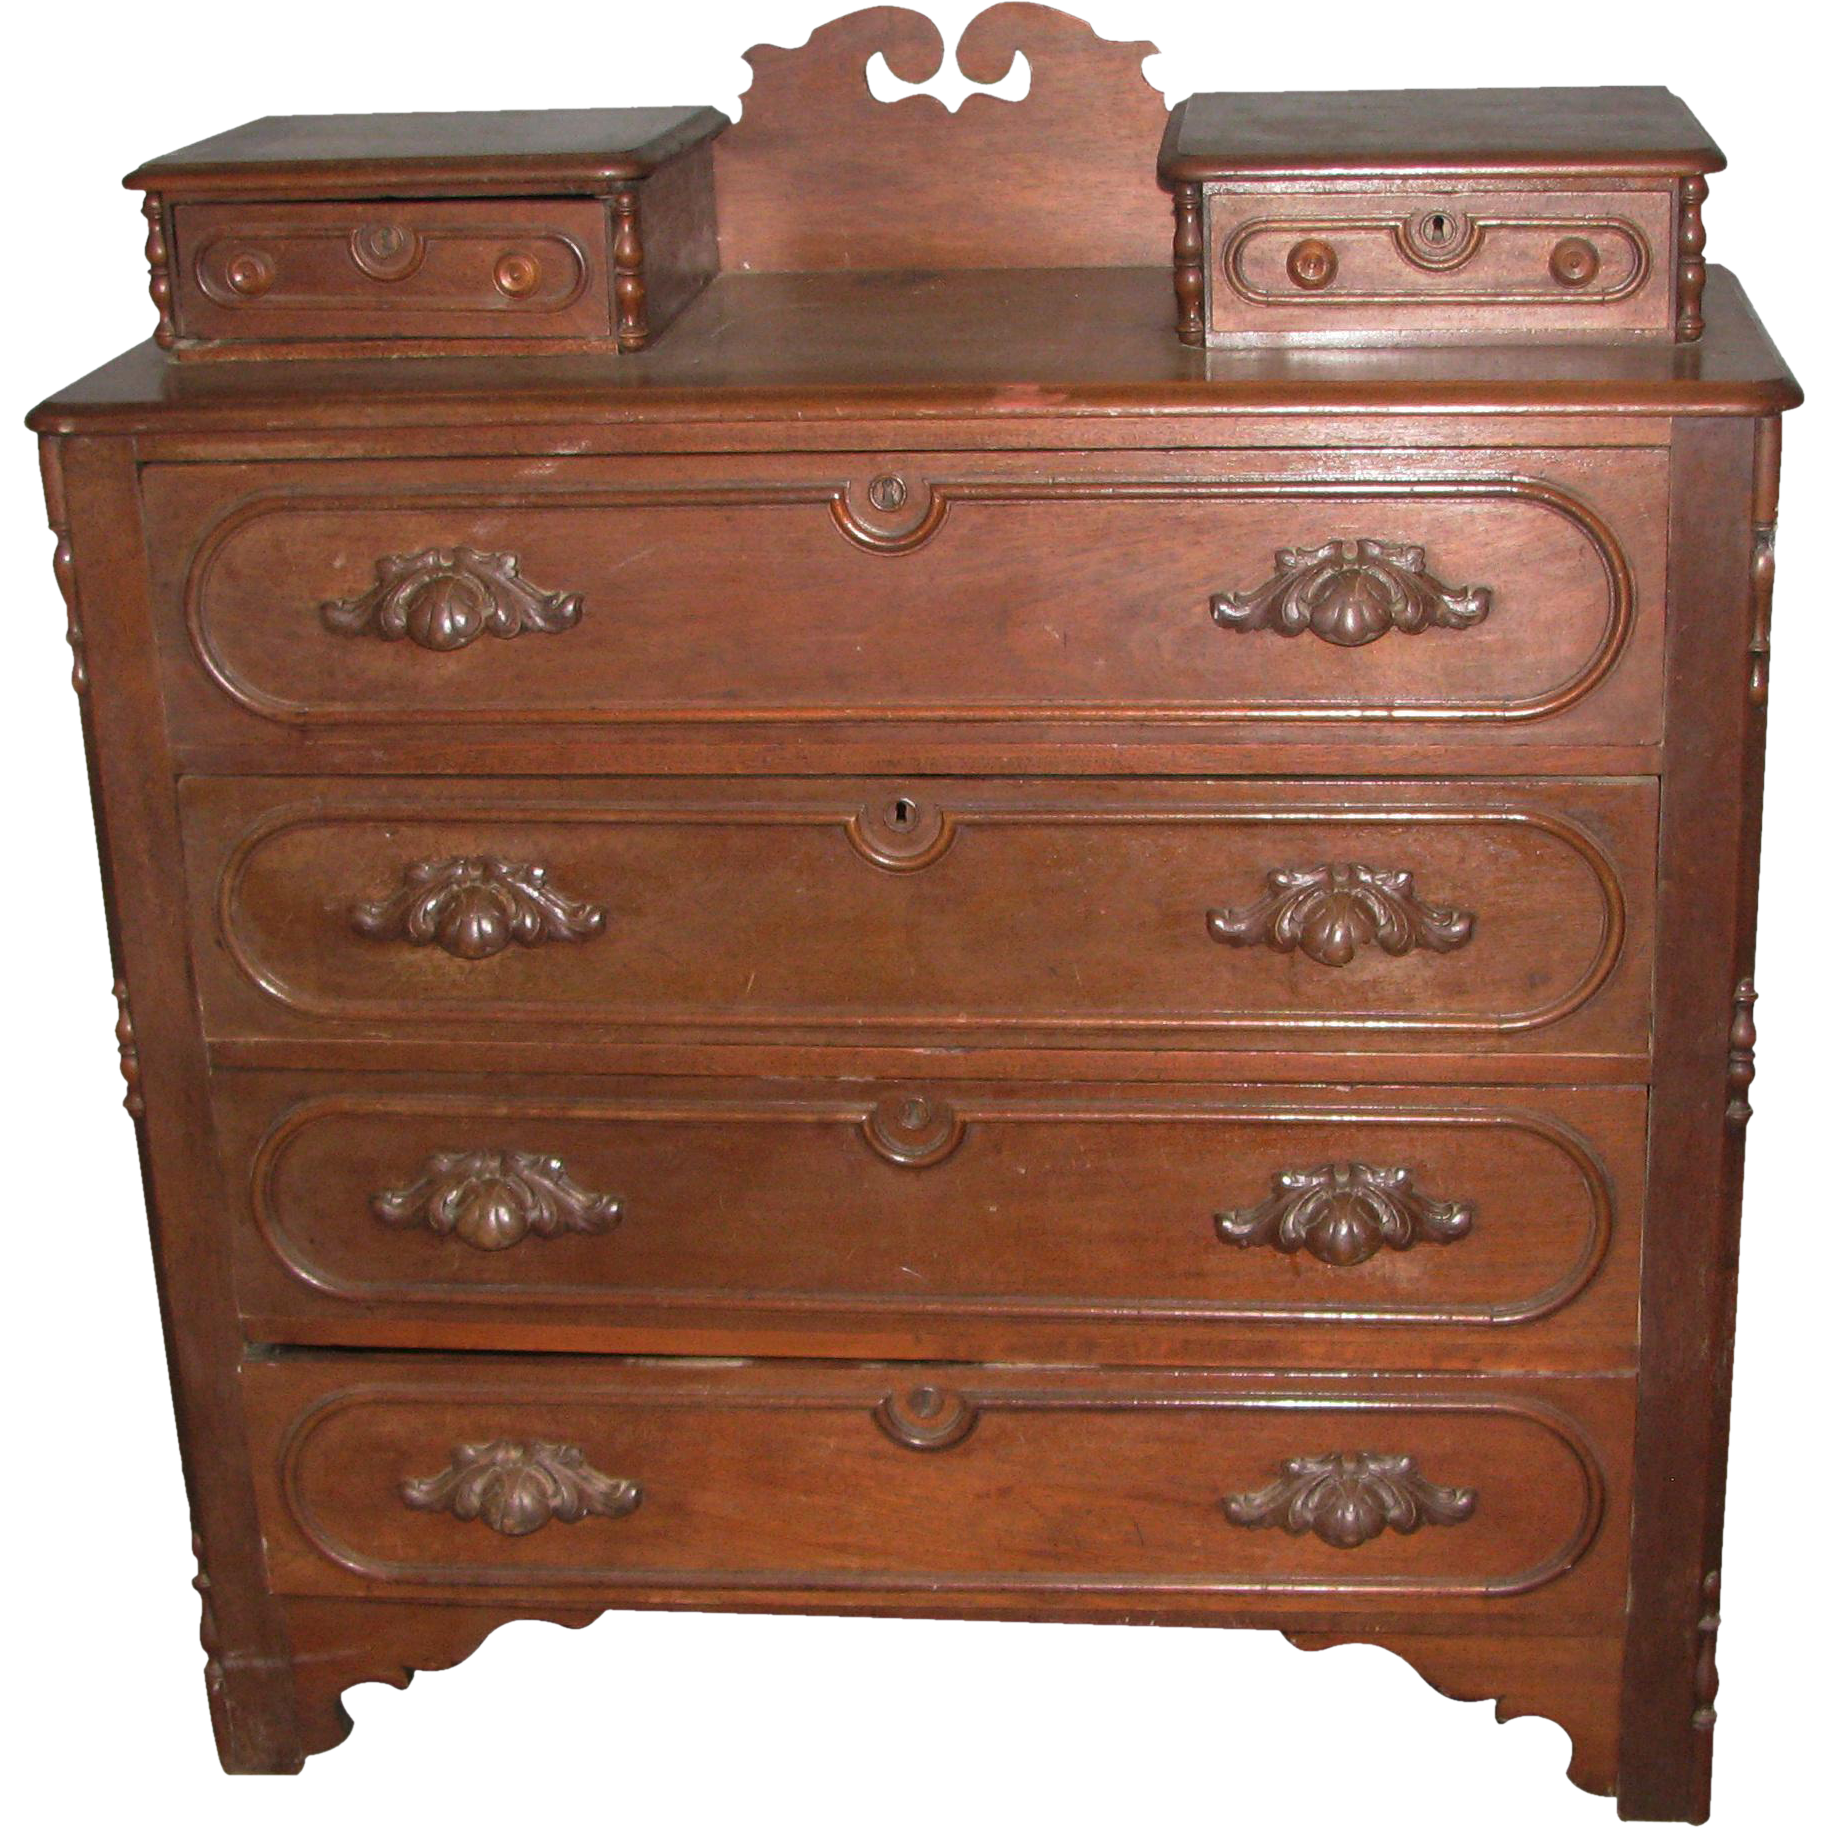 19th century walnut dresser with carved wood handles